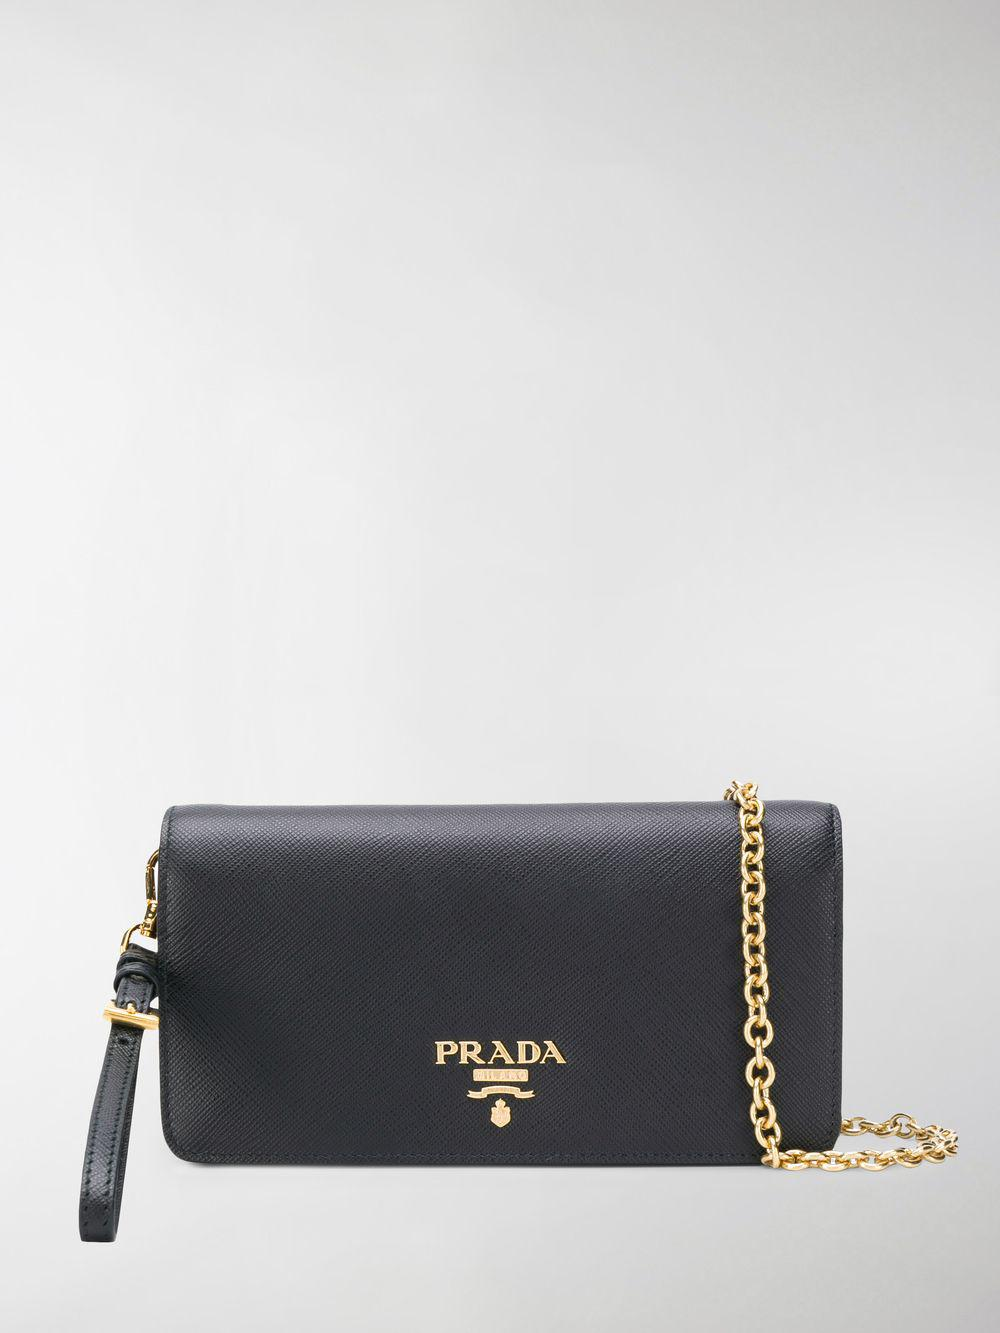 53157deb2c9d05 Lyst - Prada Black Logo Wallet Leather Chain Bag in Black